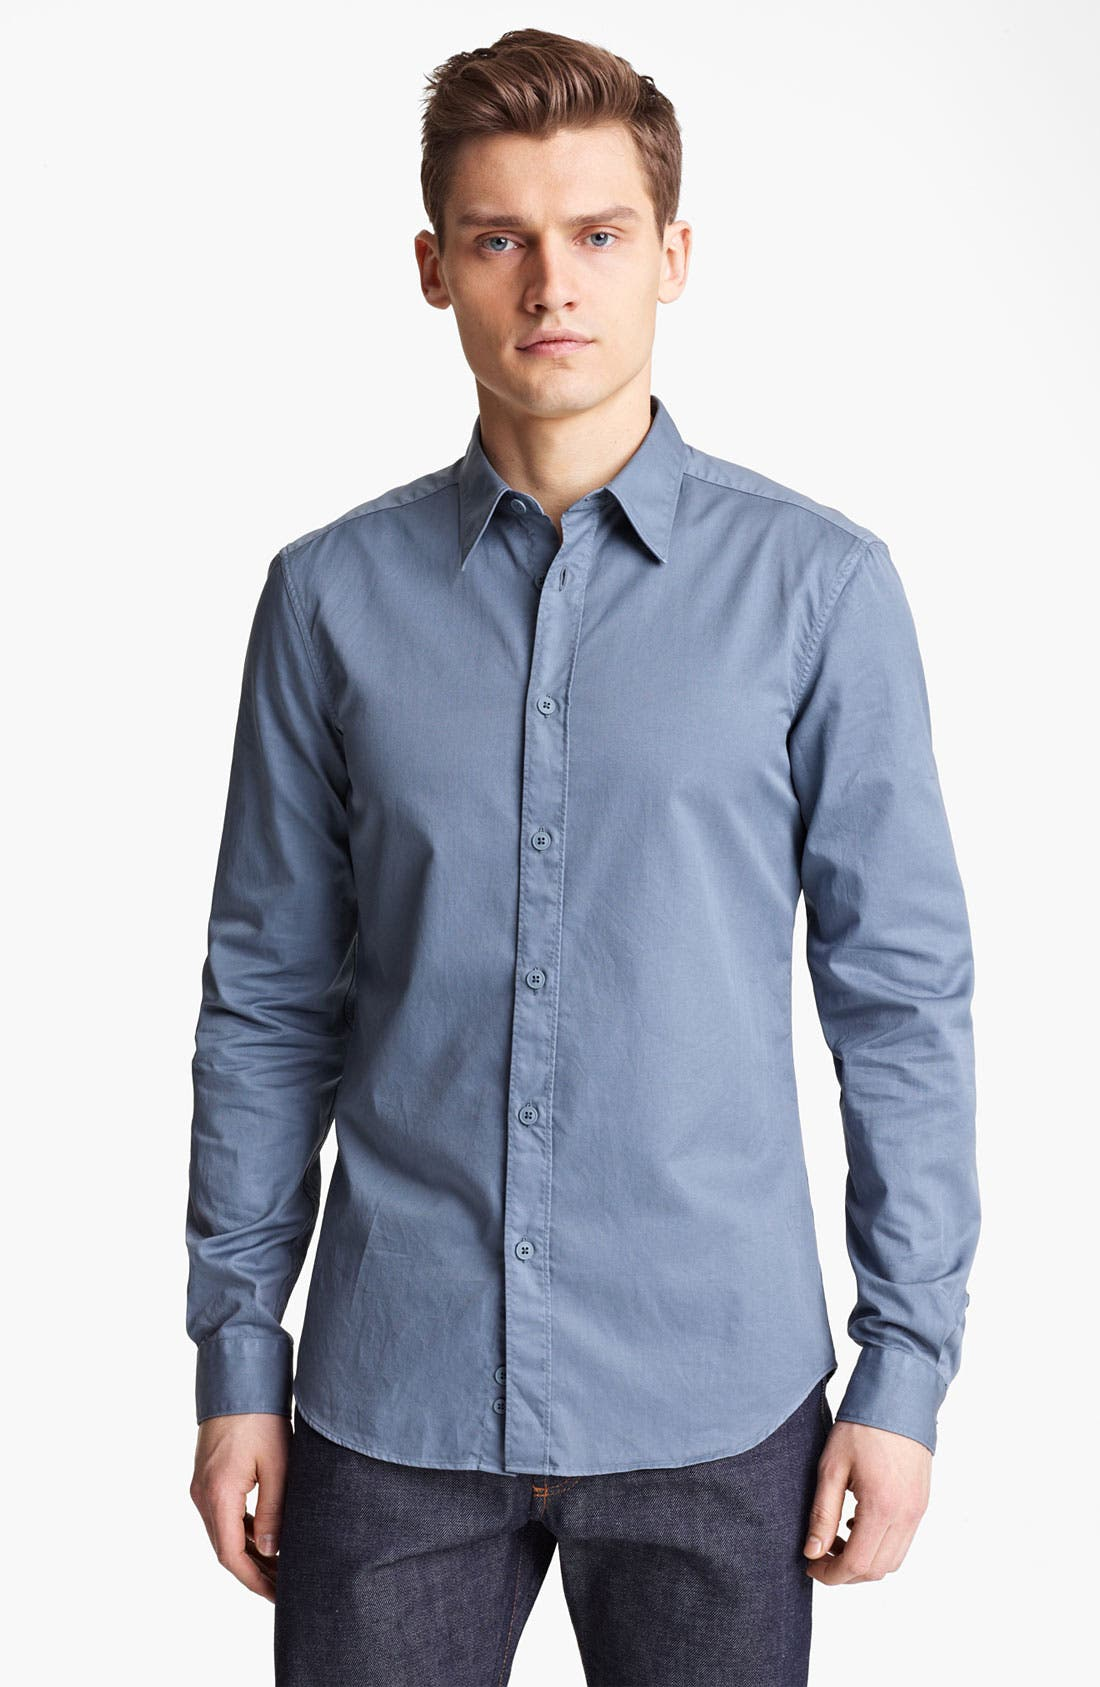 Alternate Image 1 Selected - Z Zegna Garment Dyed Woven Shirt